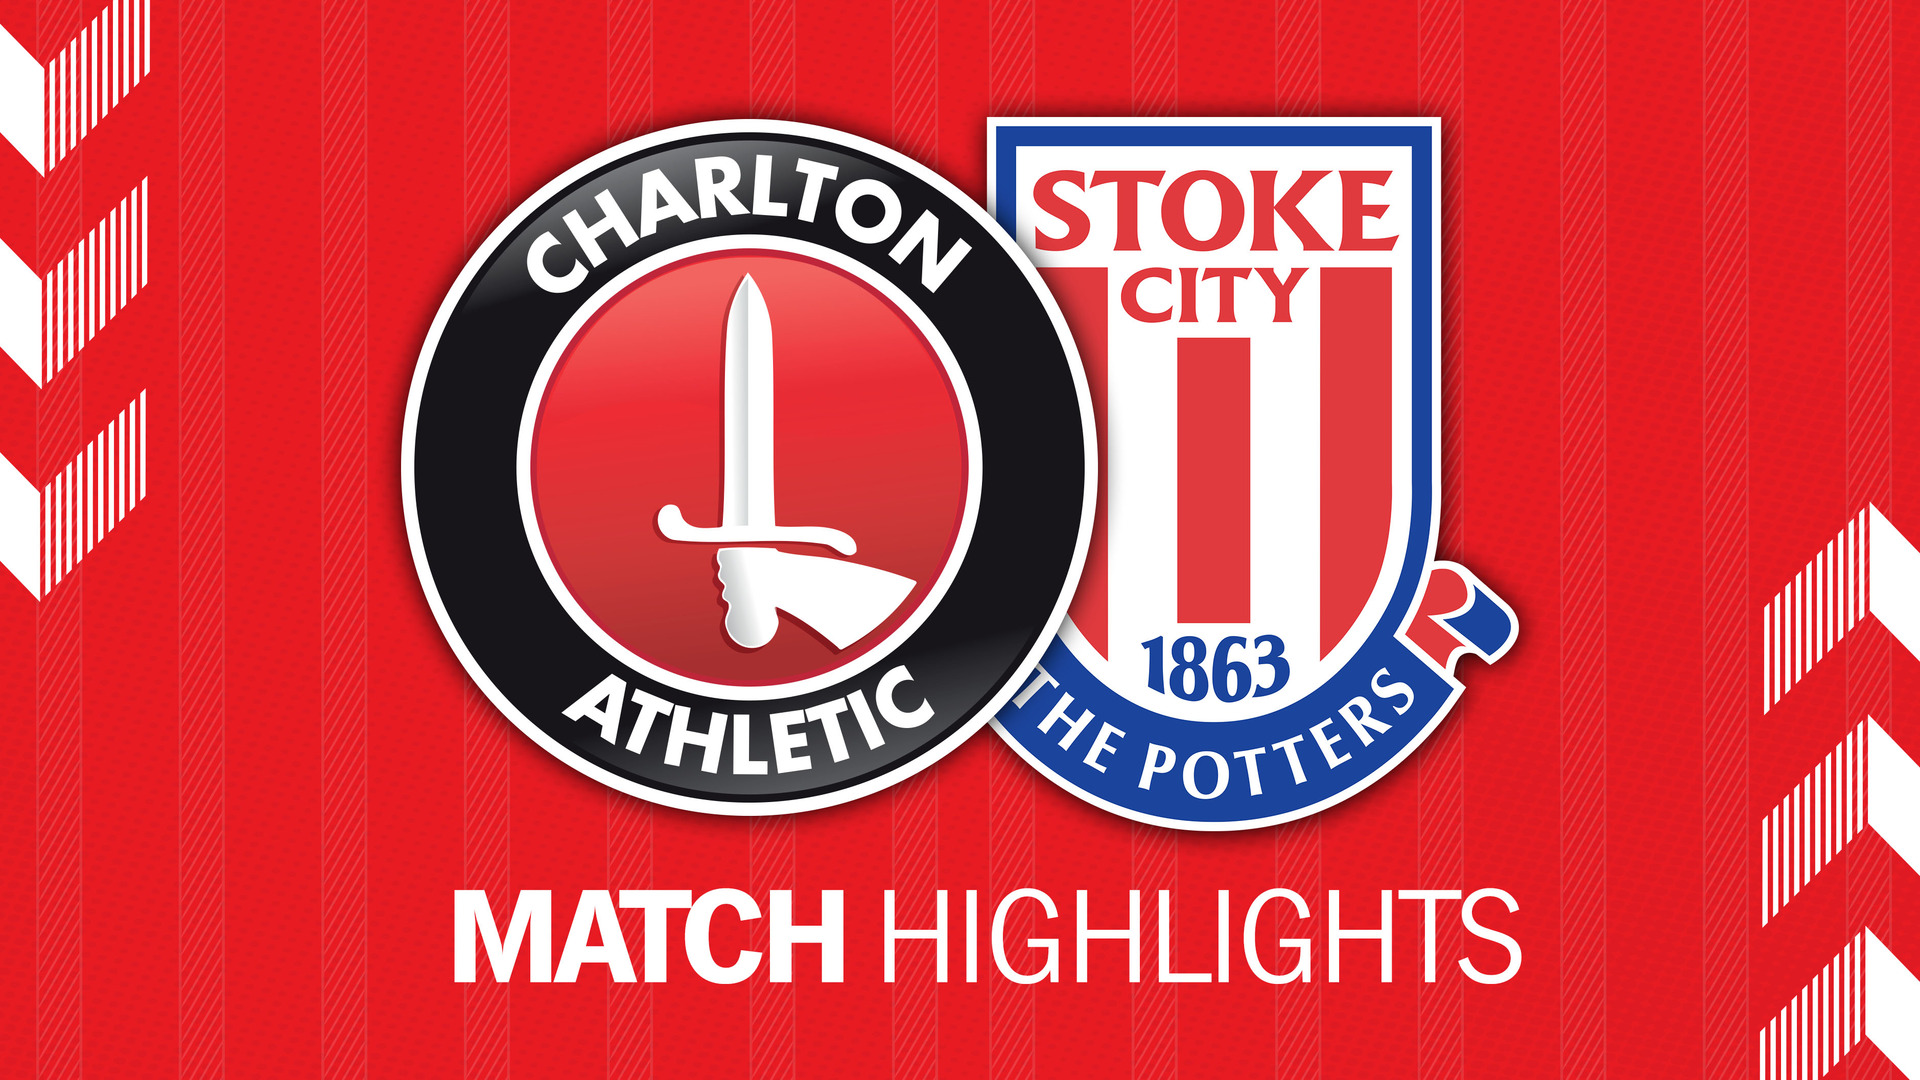 2 HIGHLIGHTS | Charlton 3 Stoke City 1 (August 2019)